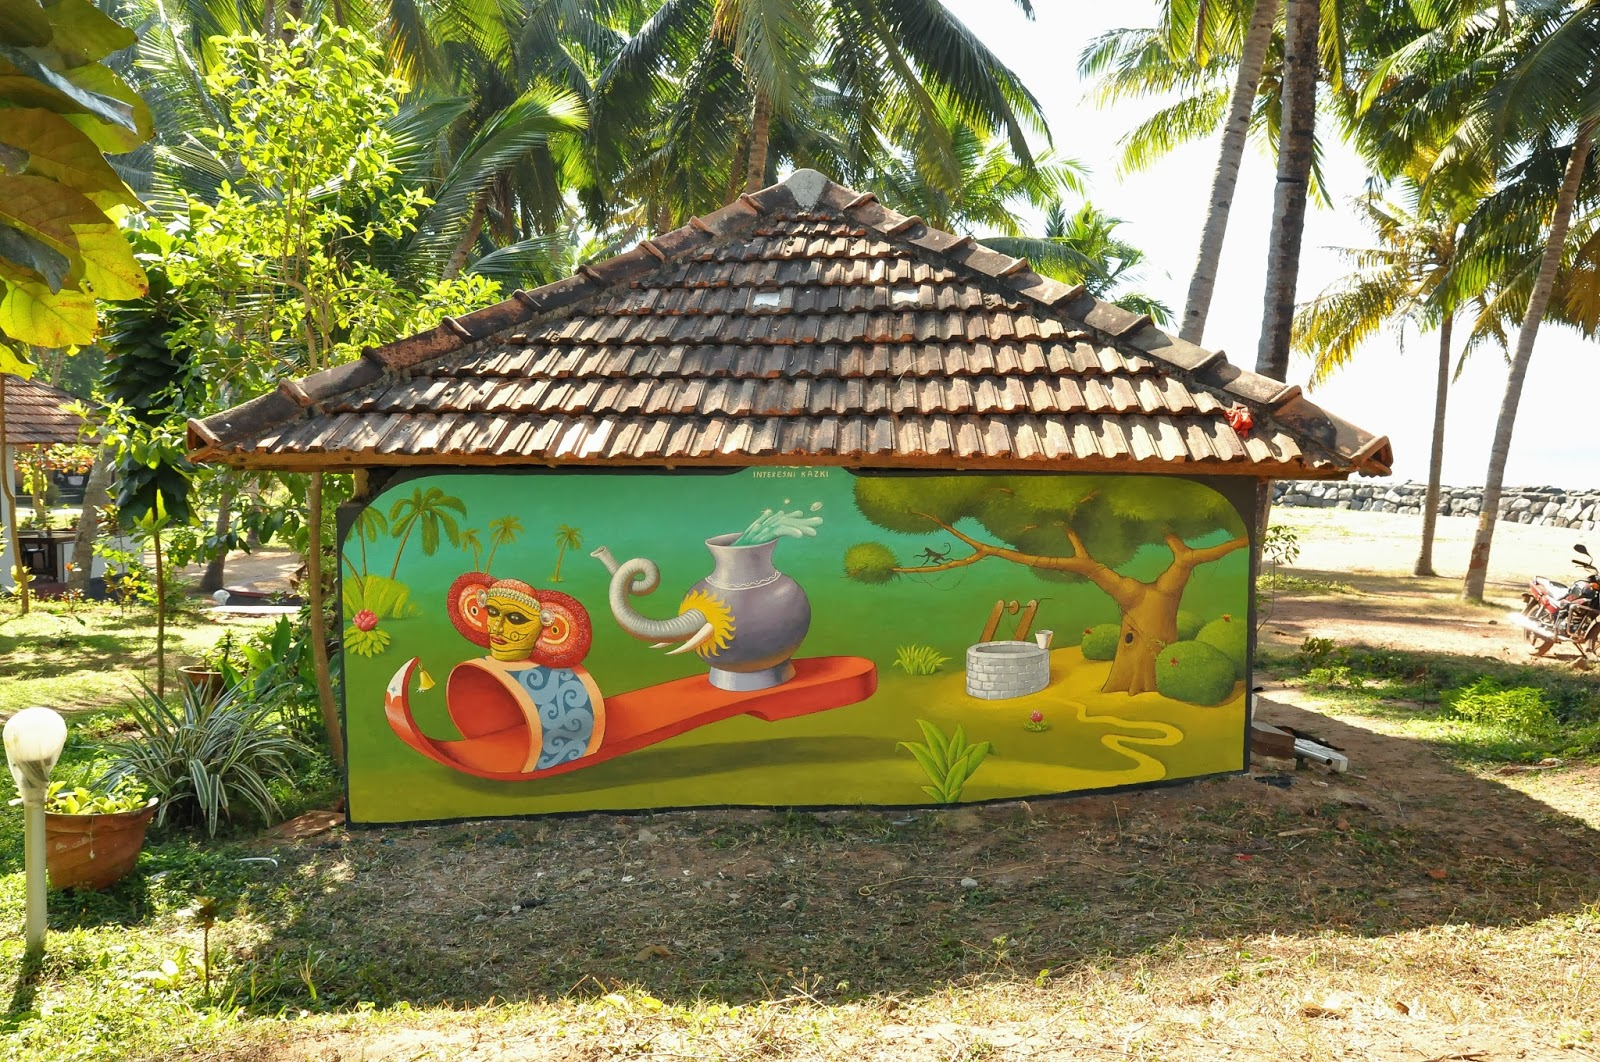 interesni-kazki-holy-slipper-new-mural-in-india-04